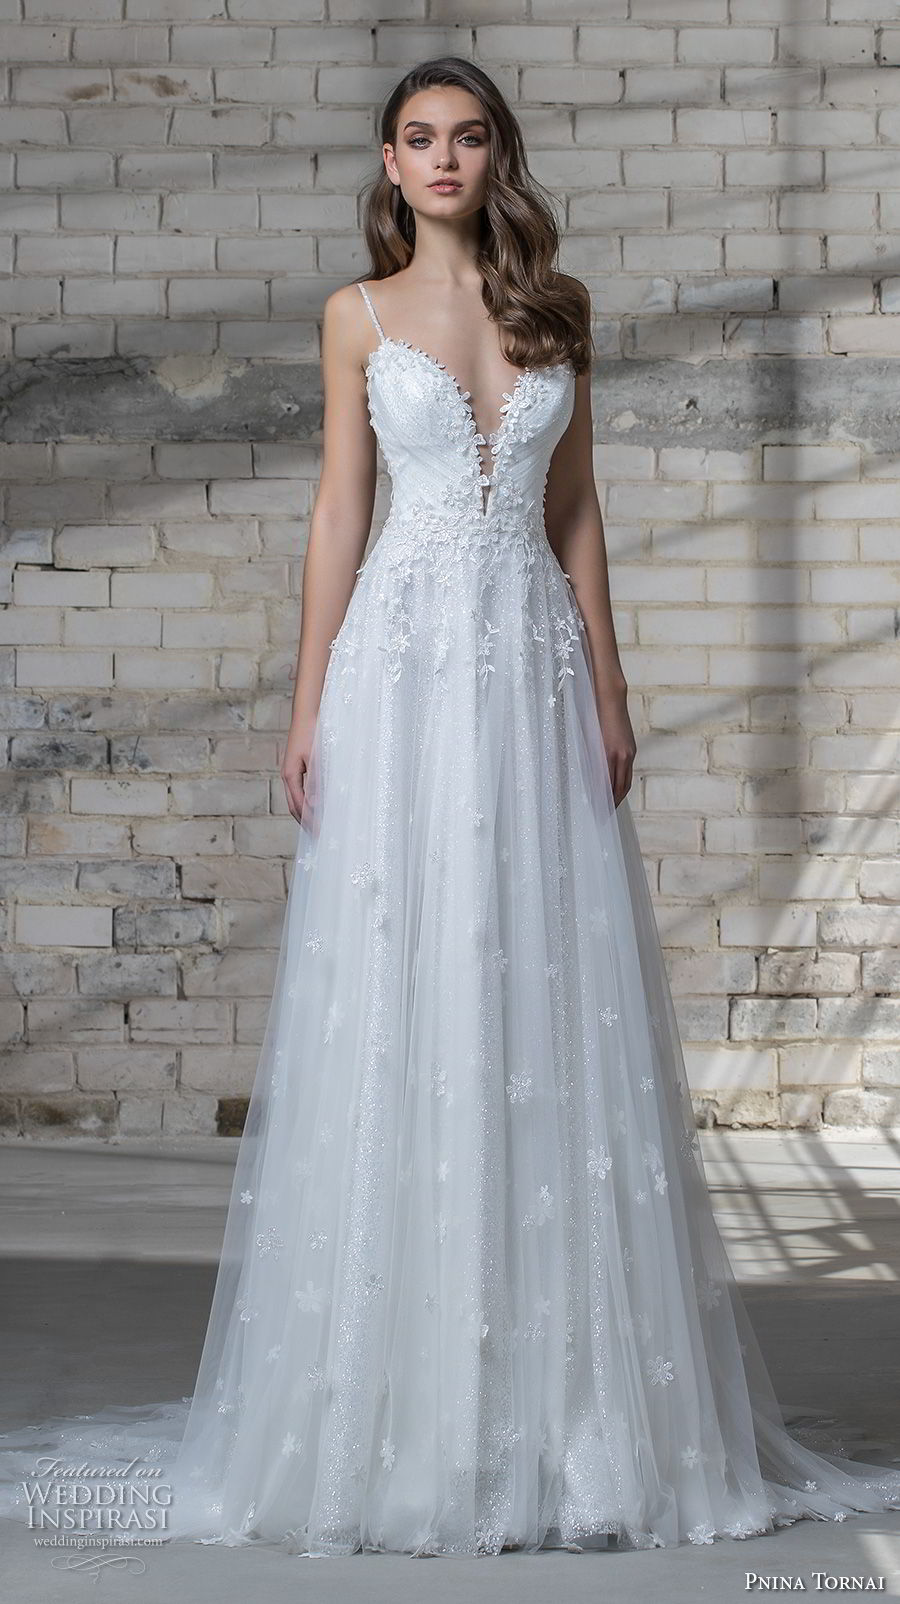 pnina tornai 2019 love bridal spaghetti strap deep sweetheart neckline heavily embellished bodice romantic a line wedding dress open back chapel train (6) mv